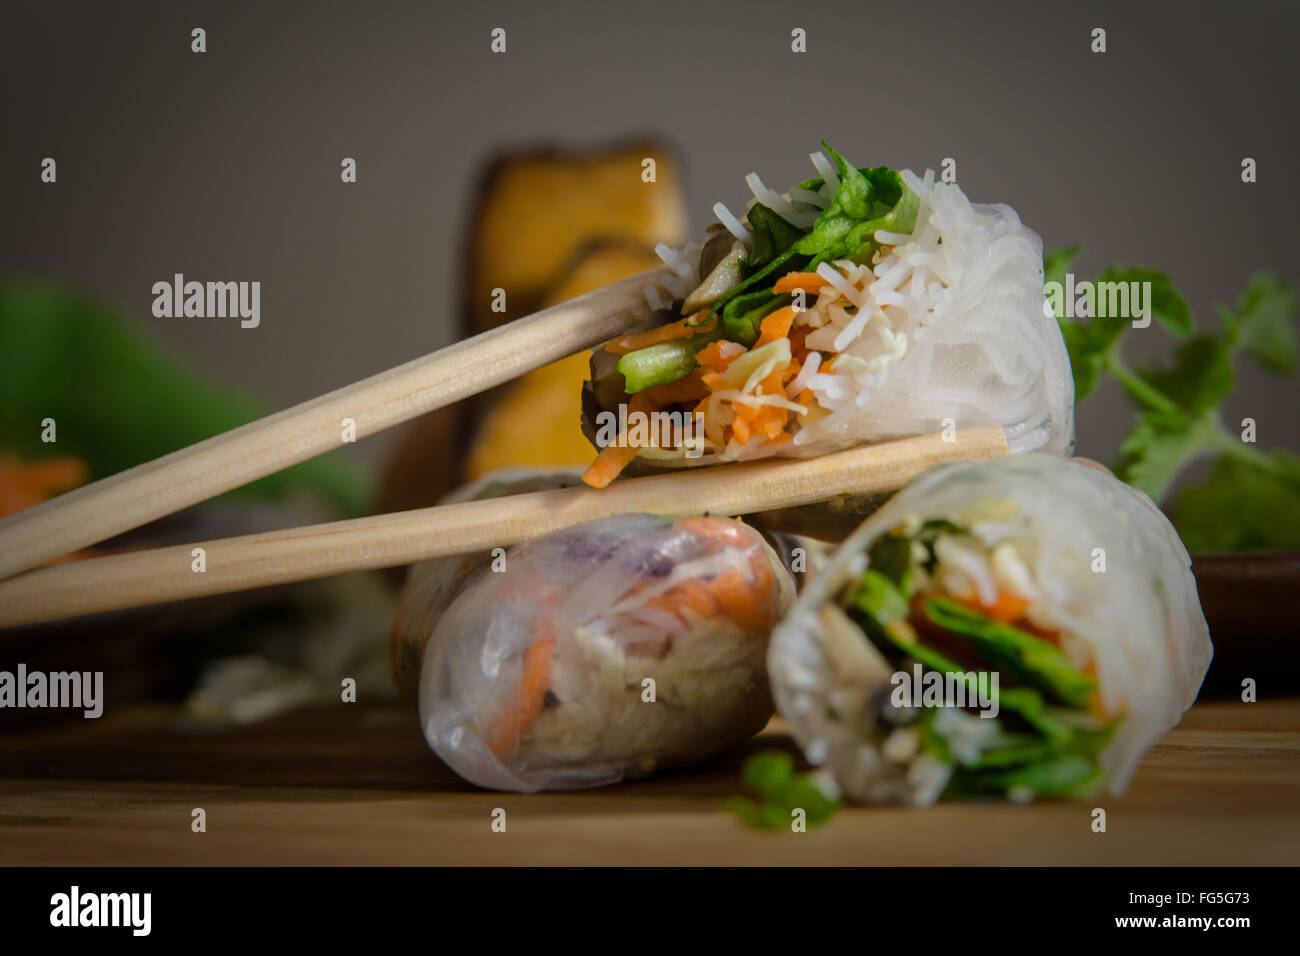 Vietnamese summer rolls surrounded with rice paper and stuffed with various vegetables. Vegetarian food. Asian food. - Stock Image